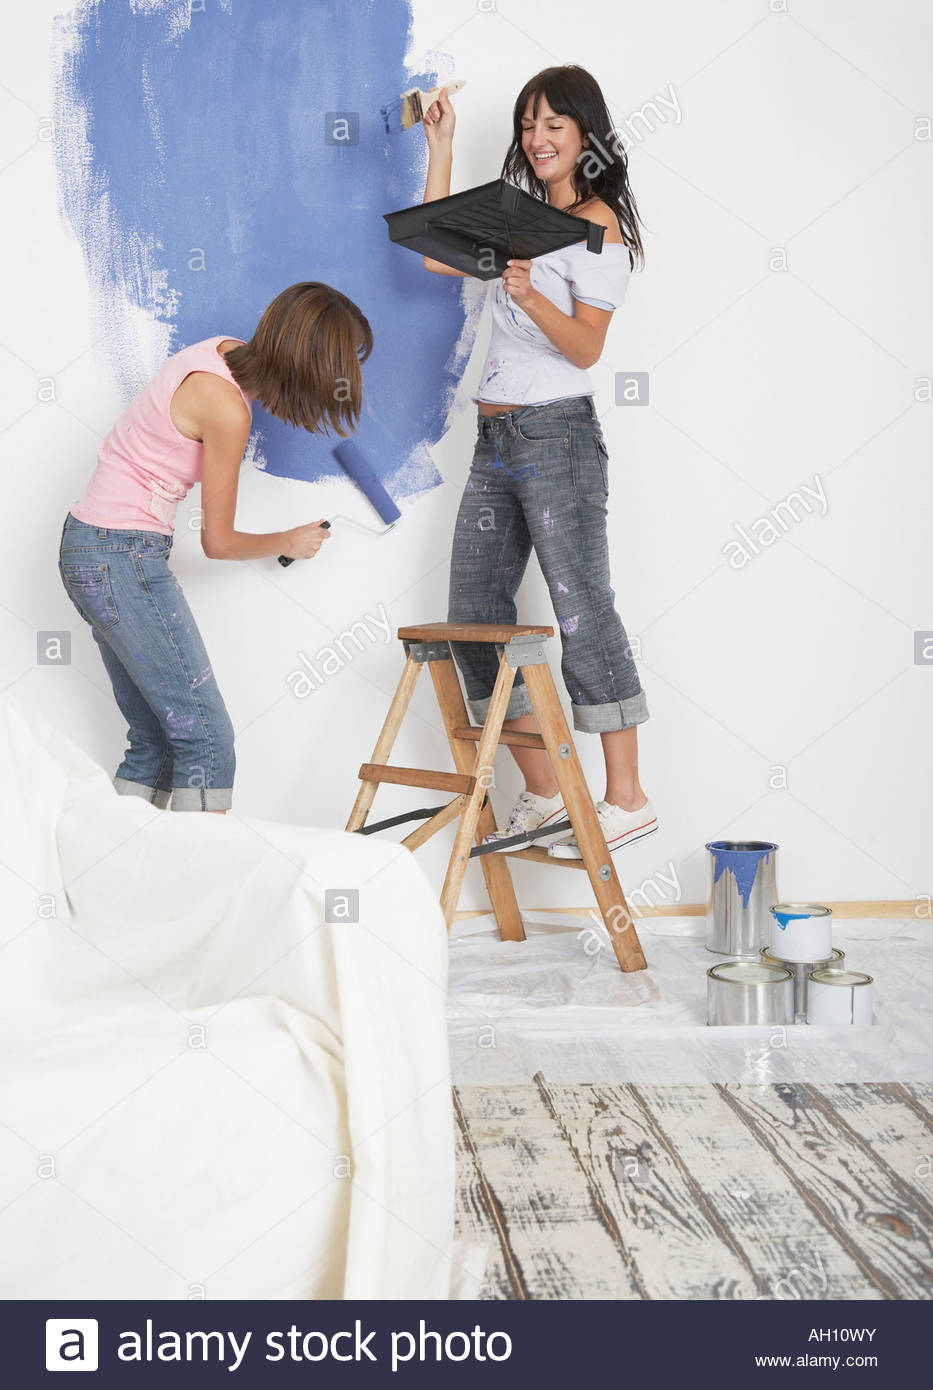 Two women painting room with thought balloon - Stock Image